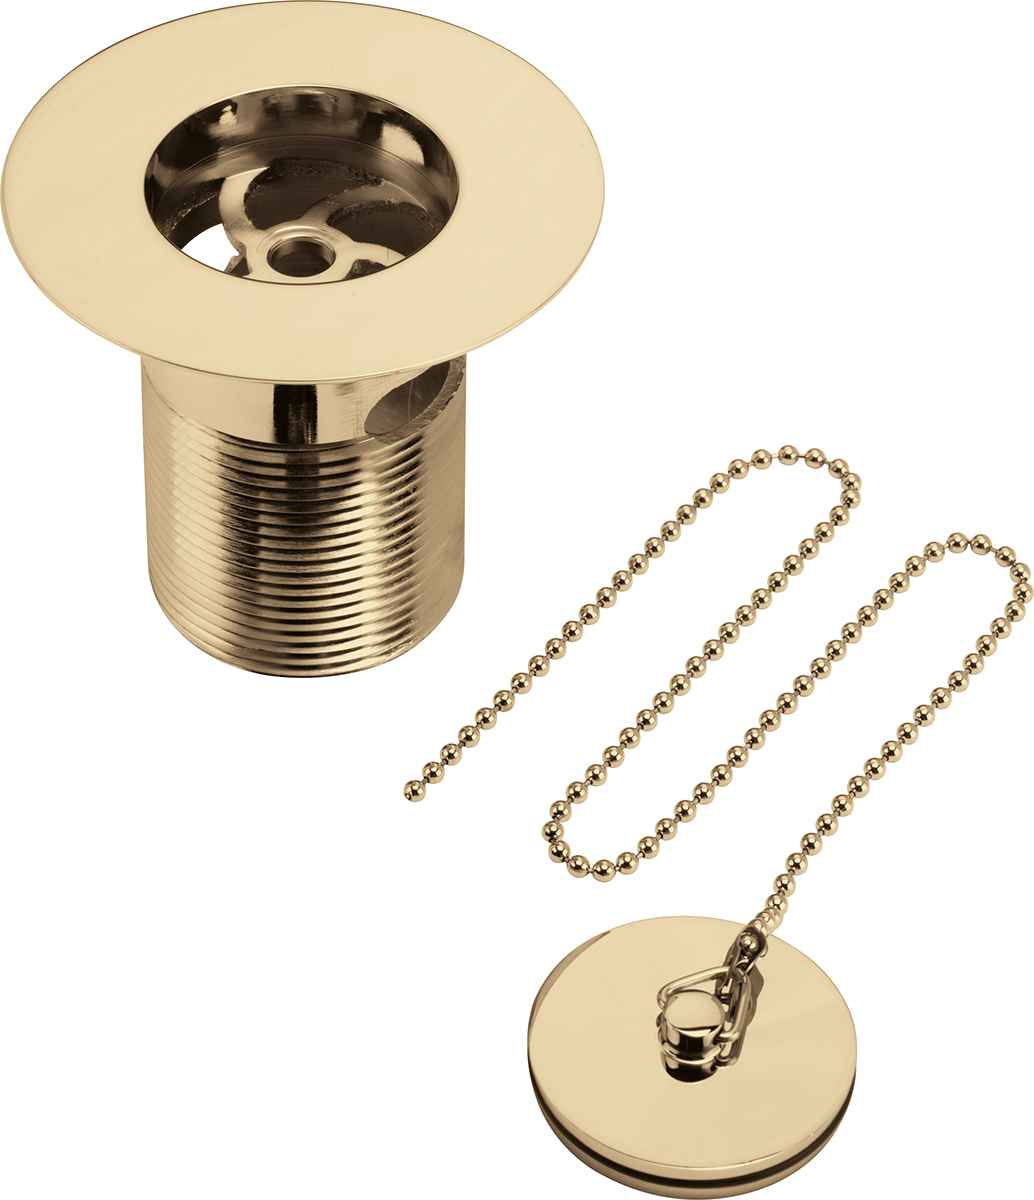 Bristan Luxury Sink Waste with Solid Brass Plug - Gold Plated